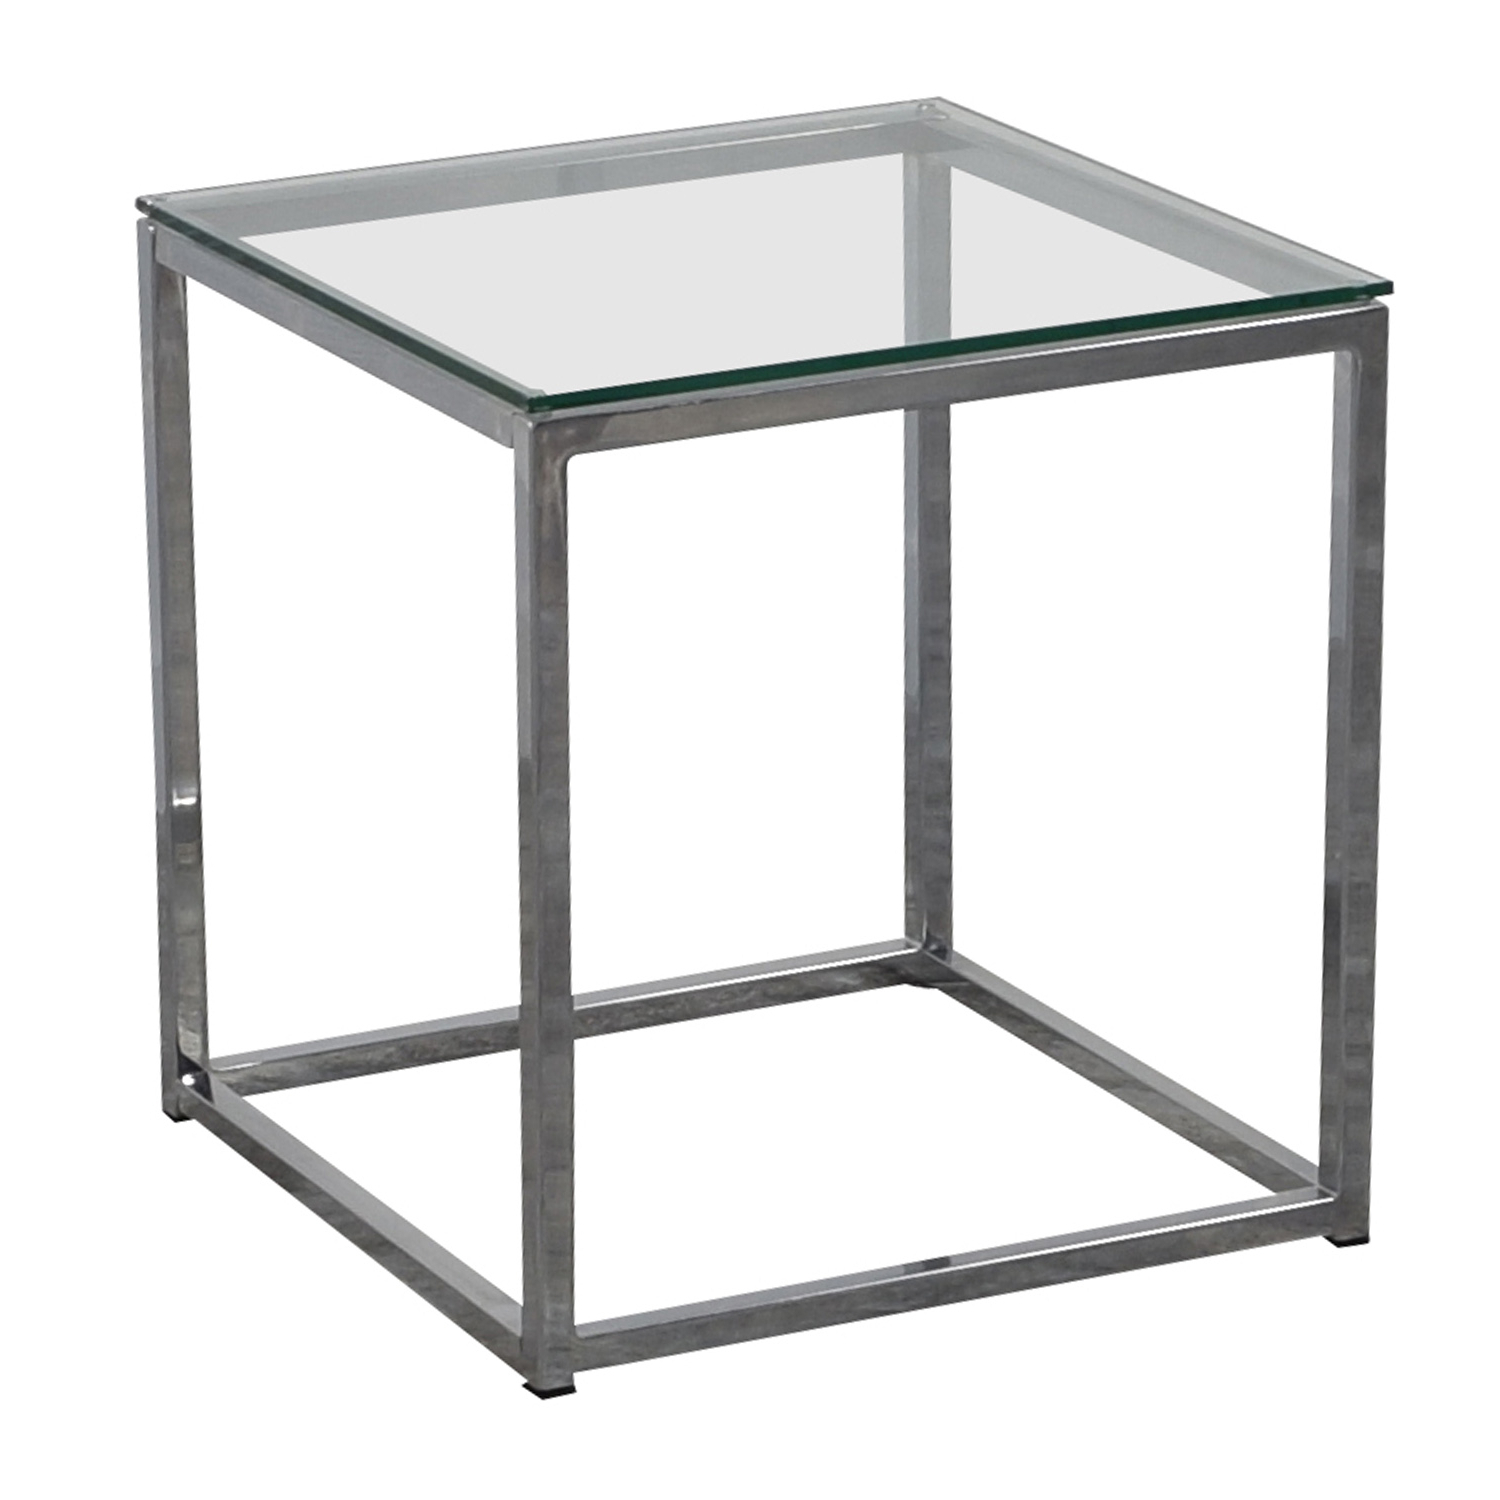 [%80% Off – Cb2 Cb2 Smart Glass Top Side Table / Tables Throughout Best And Newest Smart Glass Top Coffee Tables|Smart Glass Top Coffee Tables Pertaining To 2018 80% Off – Cb2 Cb2 Smart Glass Top Side Table / Tables|Trendy Smart Glass Top Coffee Tables In 80% Off – Cb2 Cb2 Smart Glass Top Side Table / Tables|2018 80% Off – Cb2 Cb2 Smart Glass Top Side Table / Tables For Smart Glass Top Coffee Tables%] (View 1 of 20)